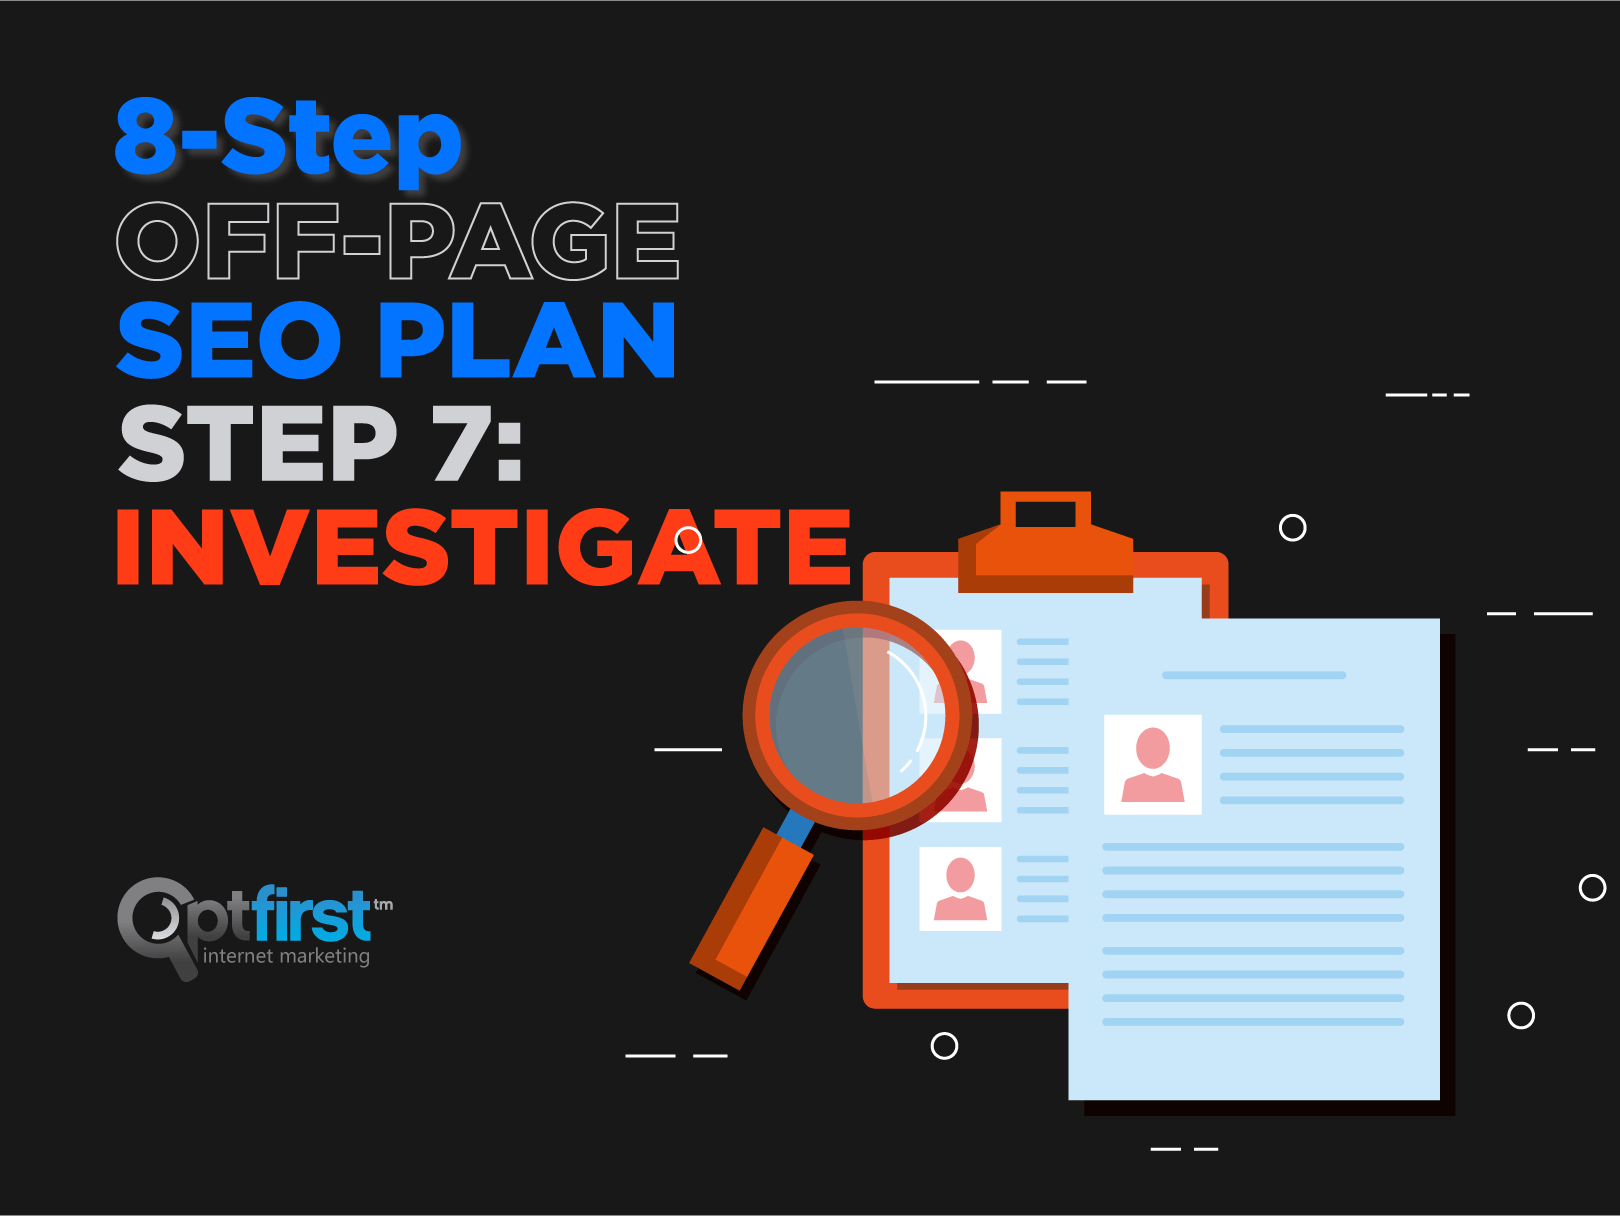 8-Step Off-Page SEO Plan